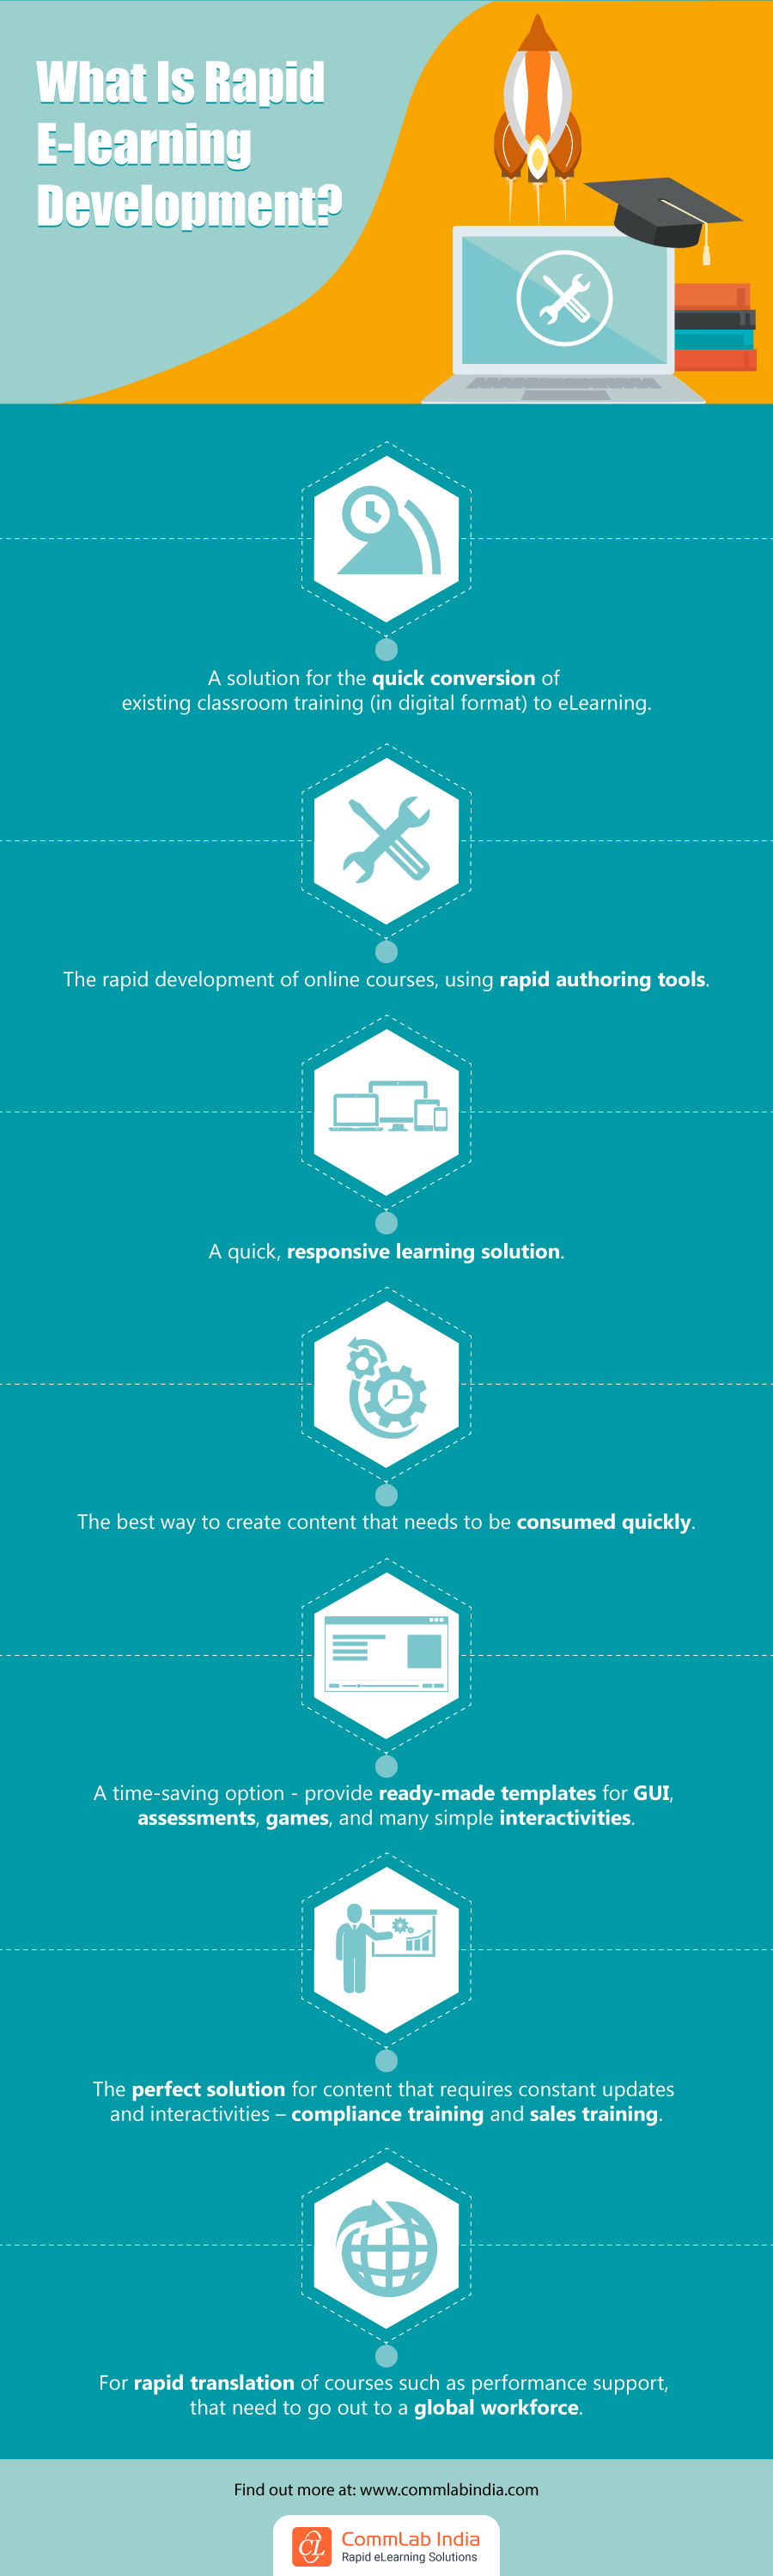 What is Rapid E-learning Development? [Infographic]